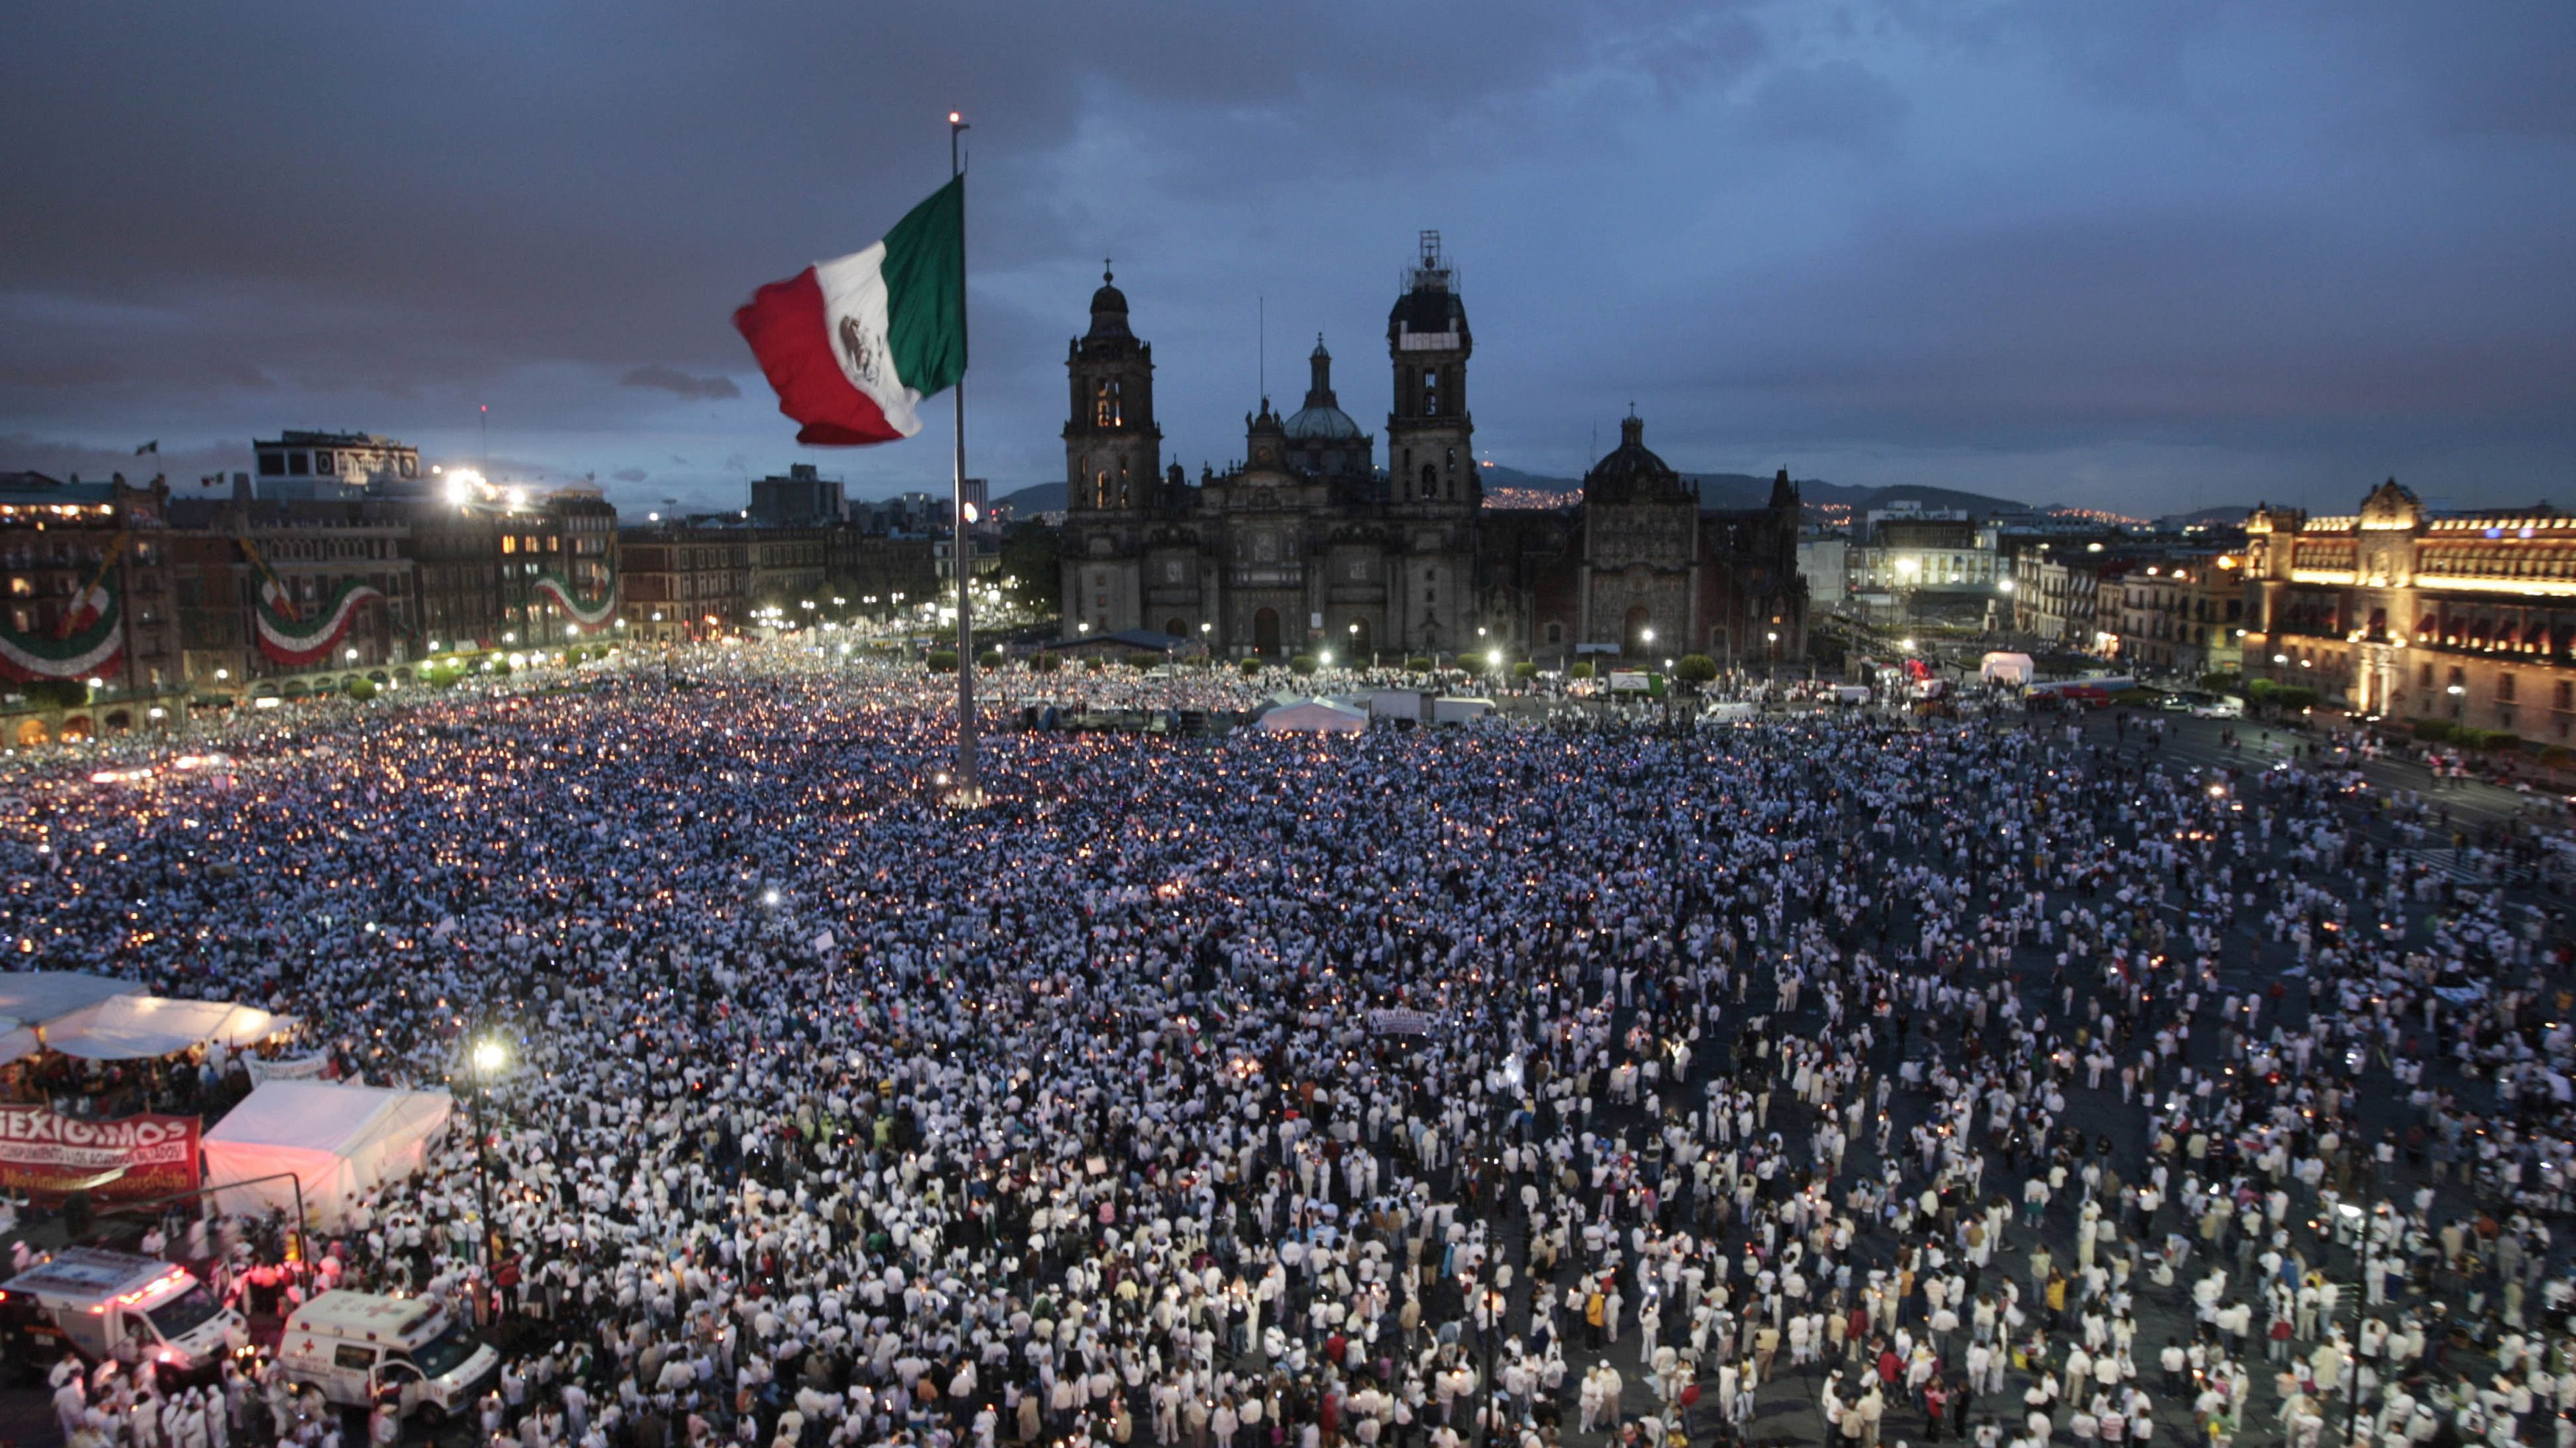 People hold candles at Zocalo square in Mexico City